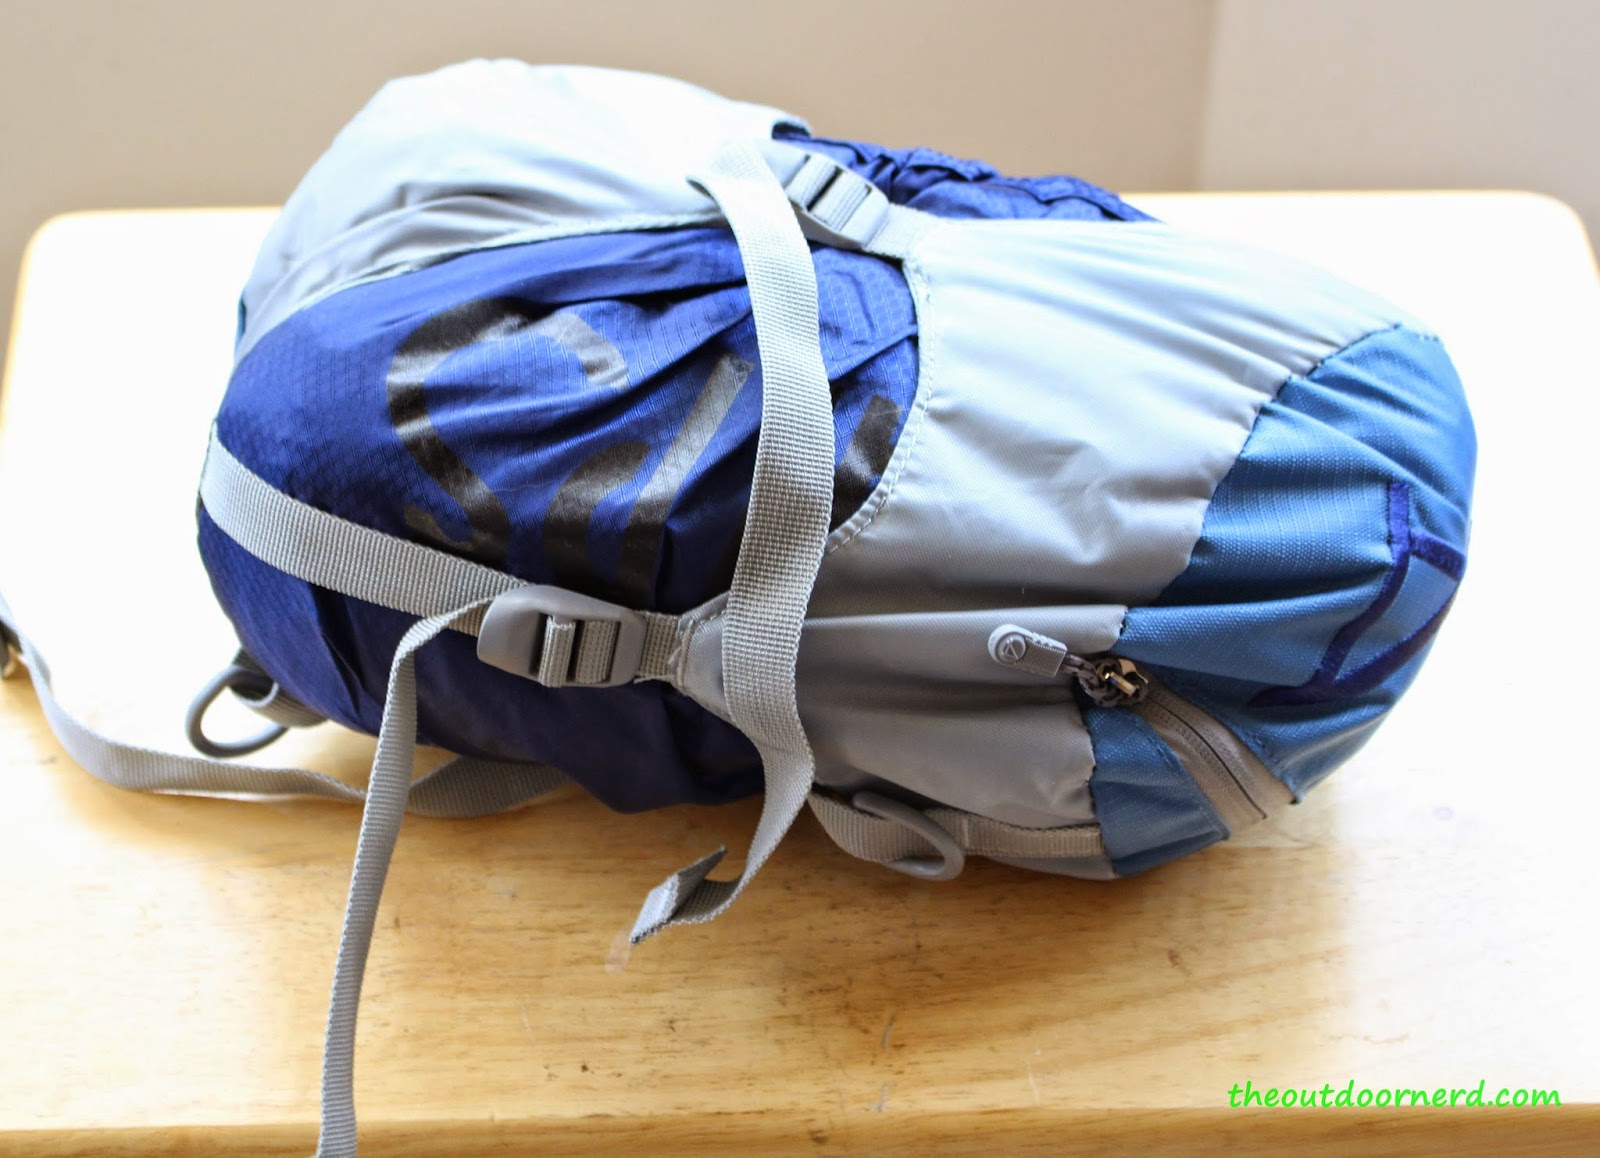 Ozark Trail Backpacker's Tent In Compression Sack